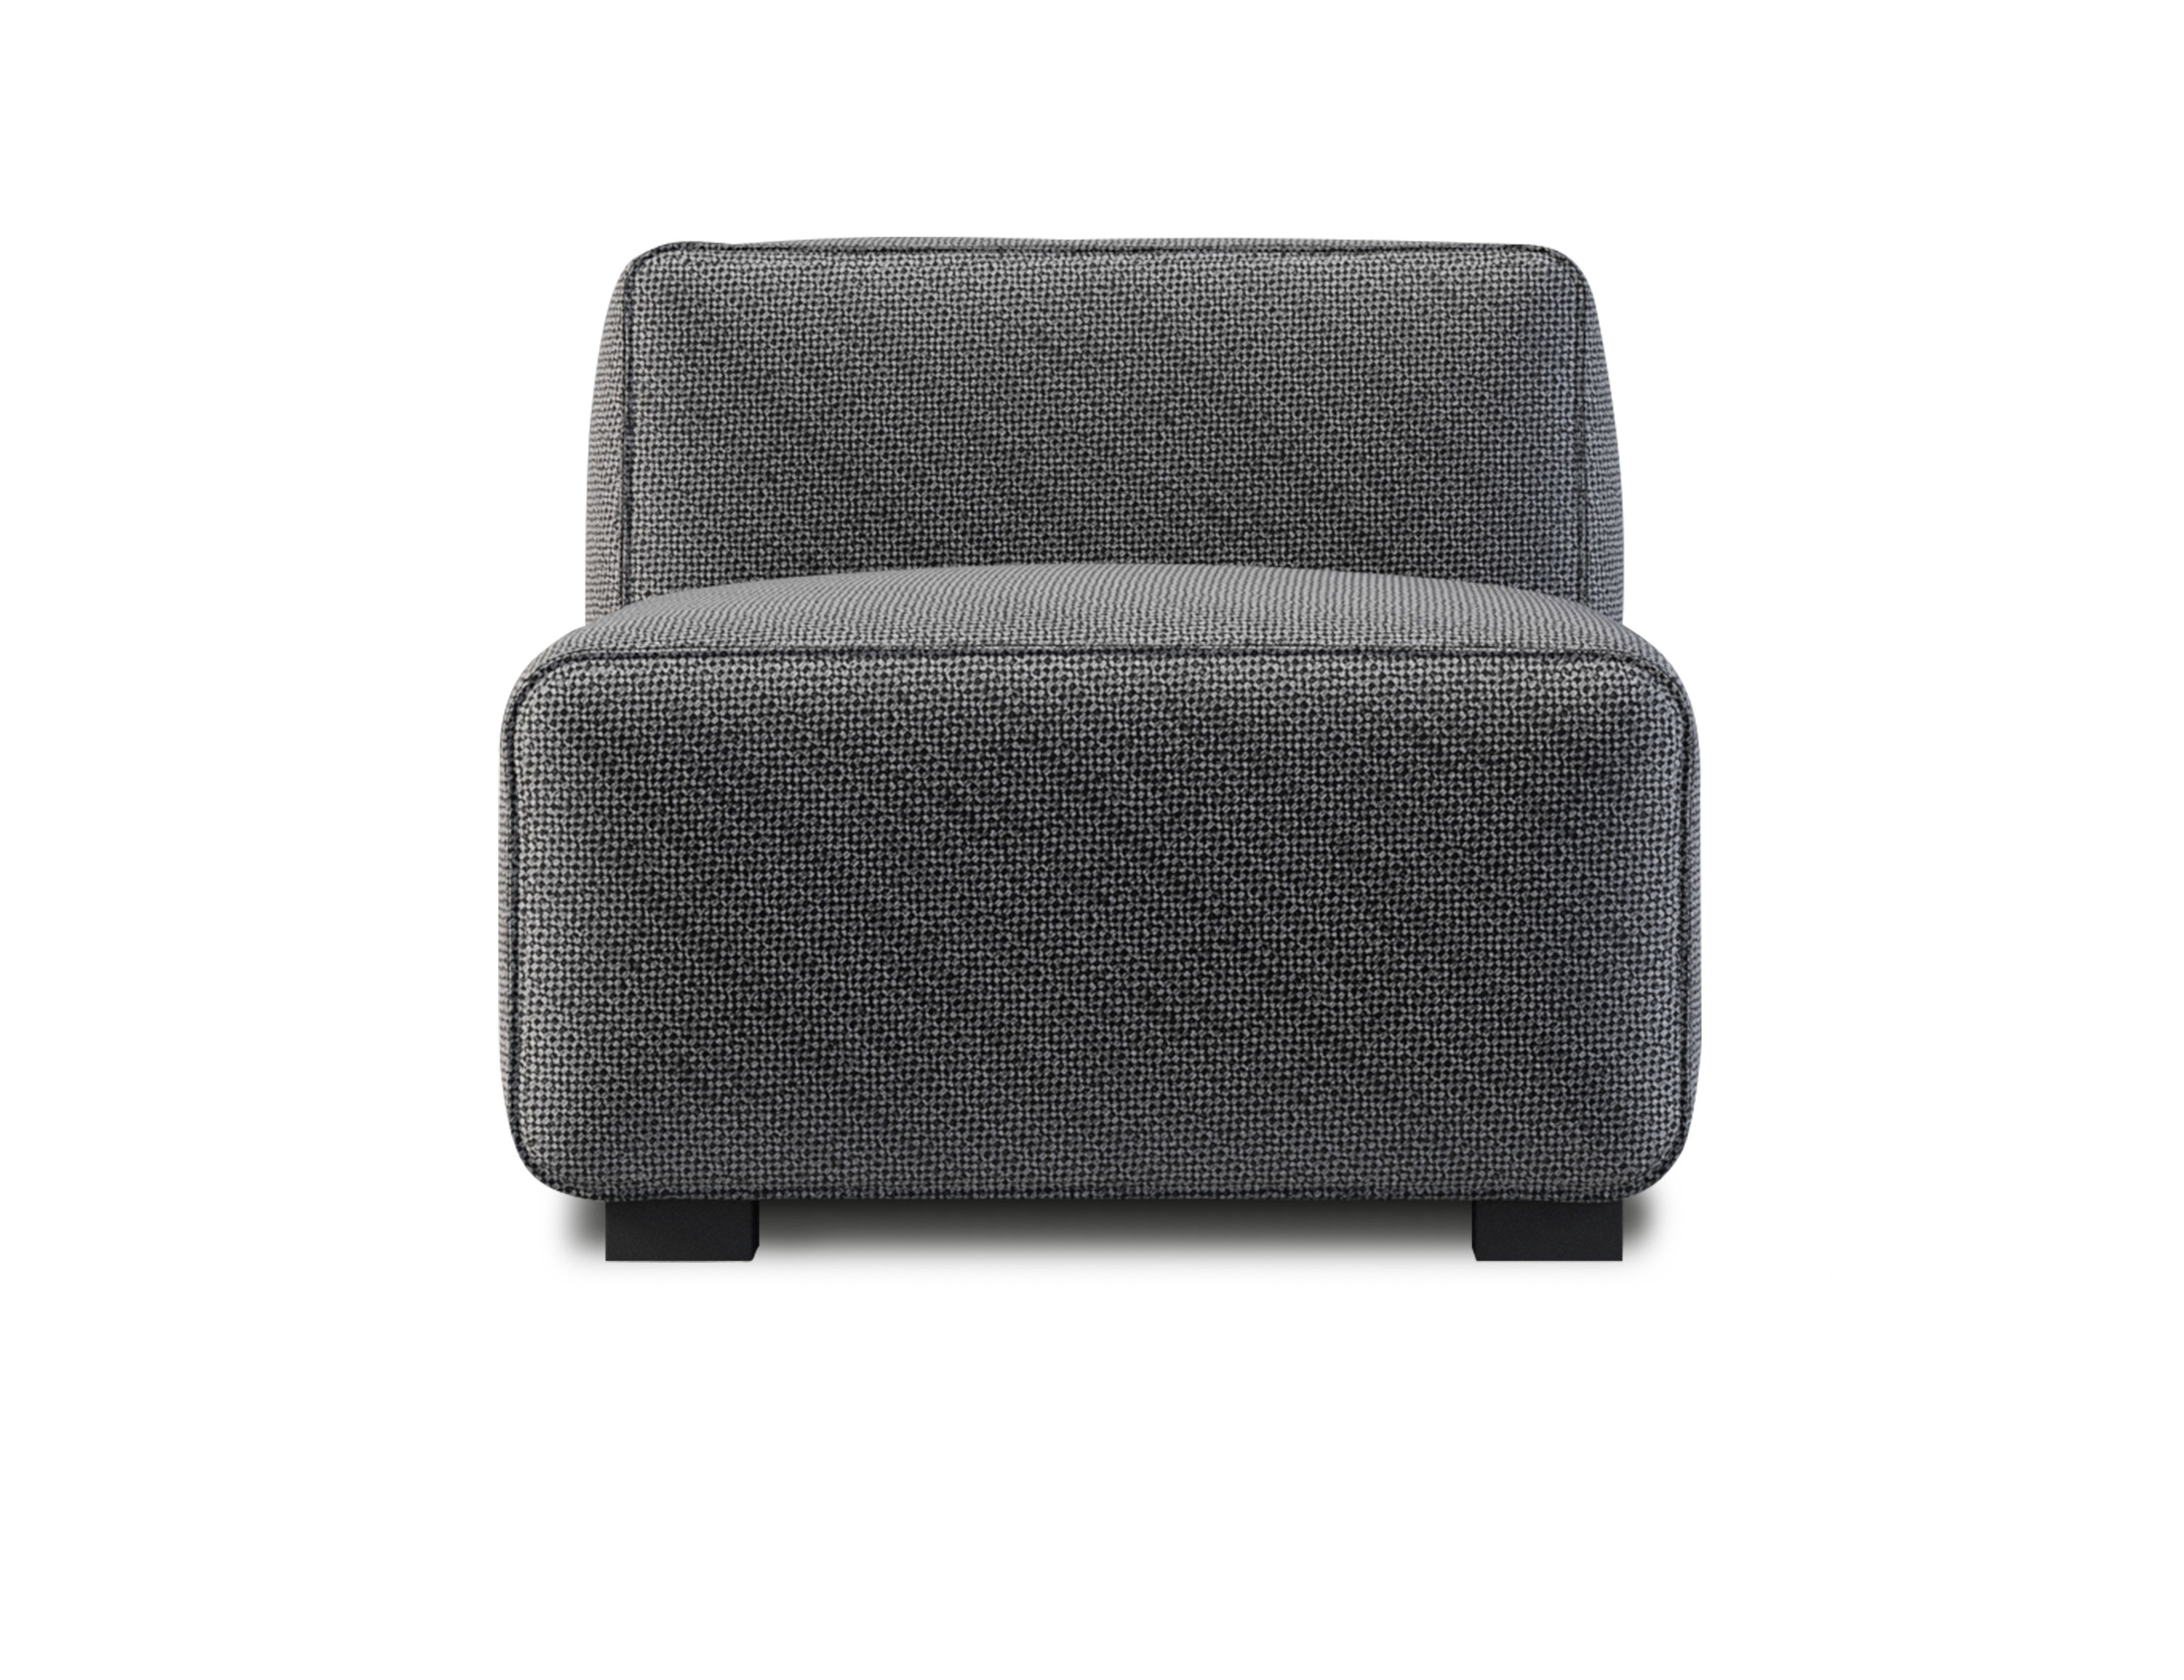 Soft Cube Sofa Single Seat Module